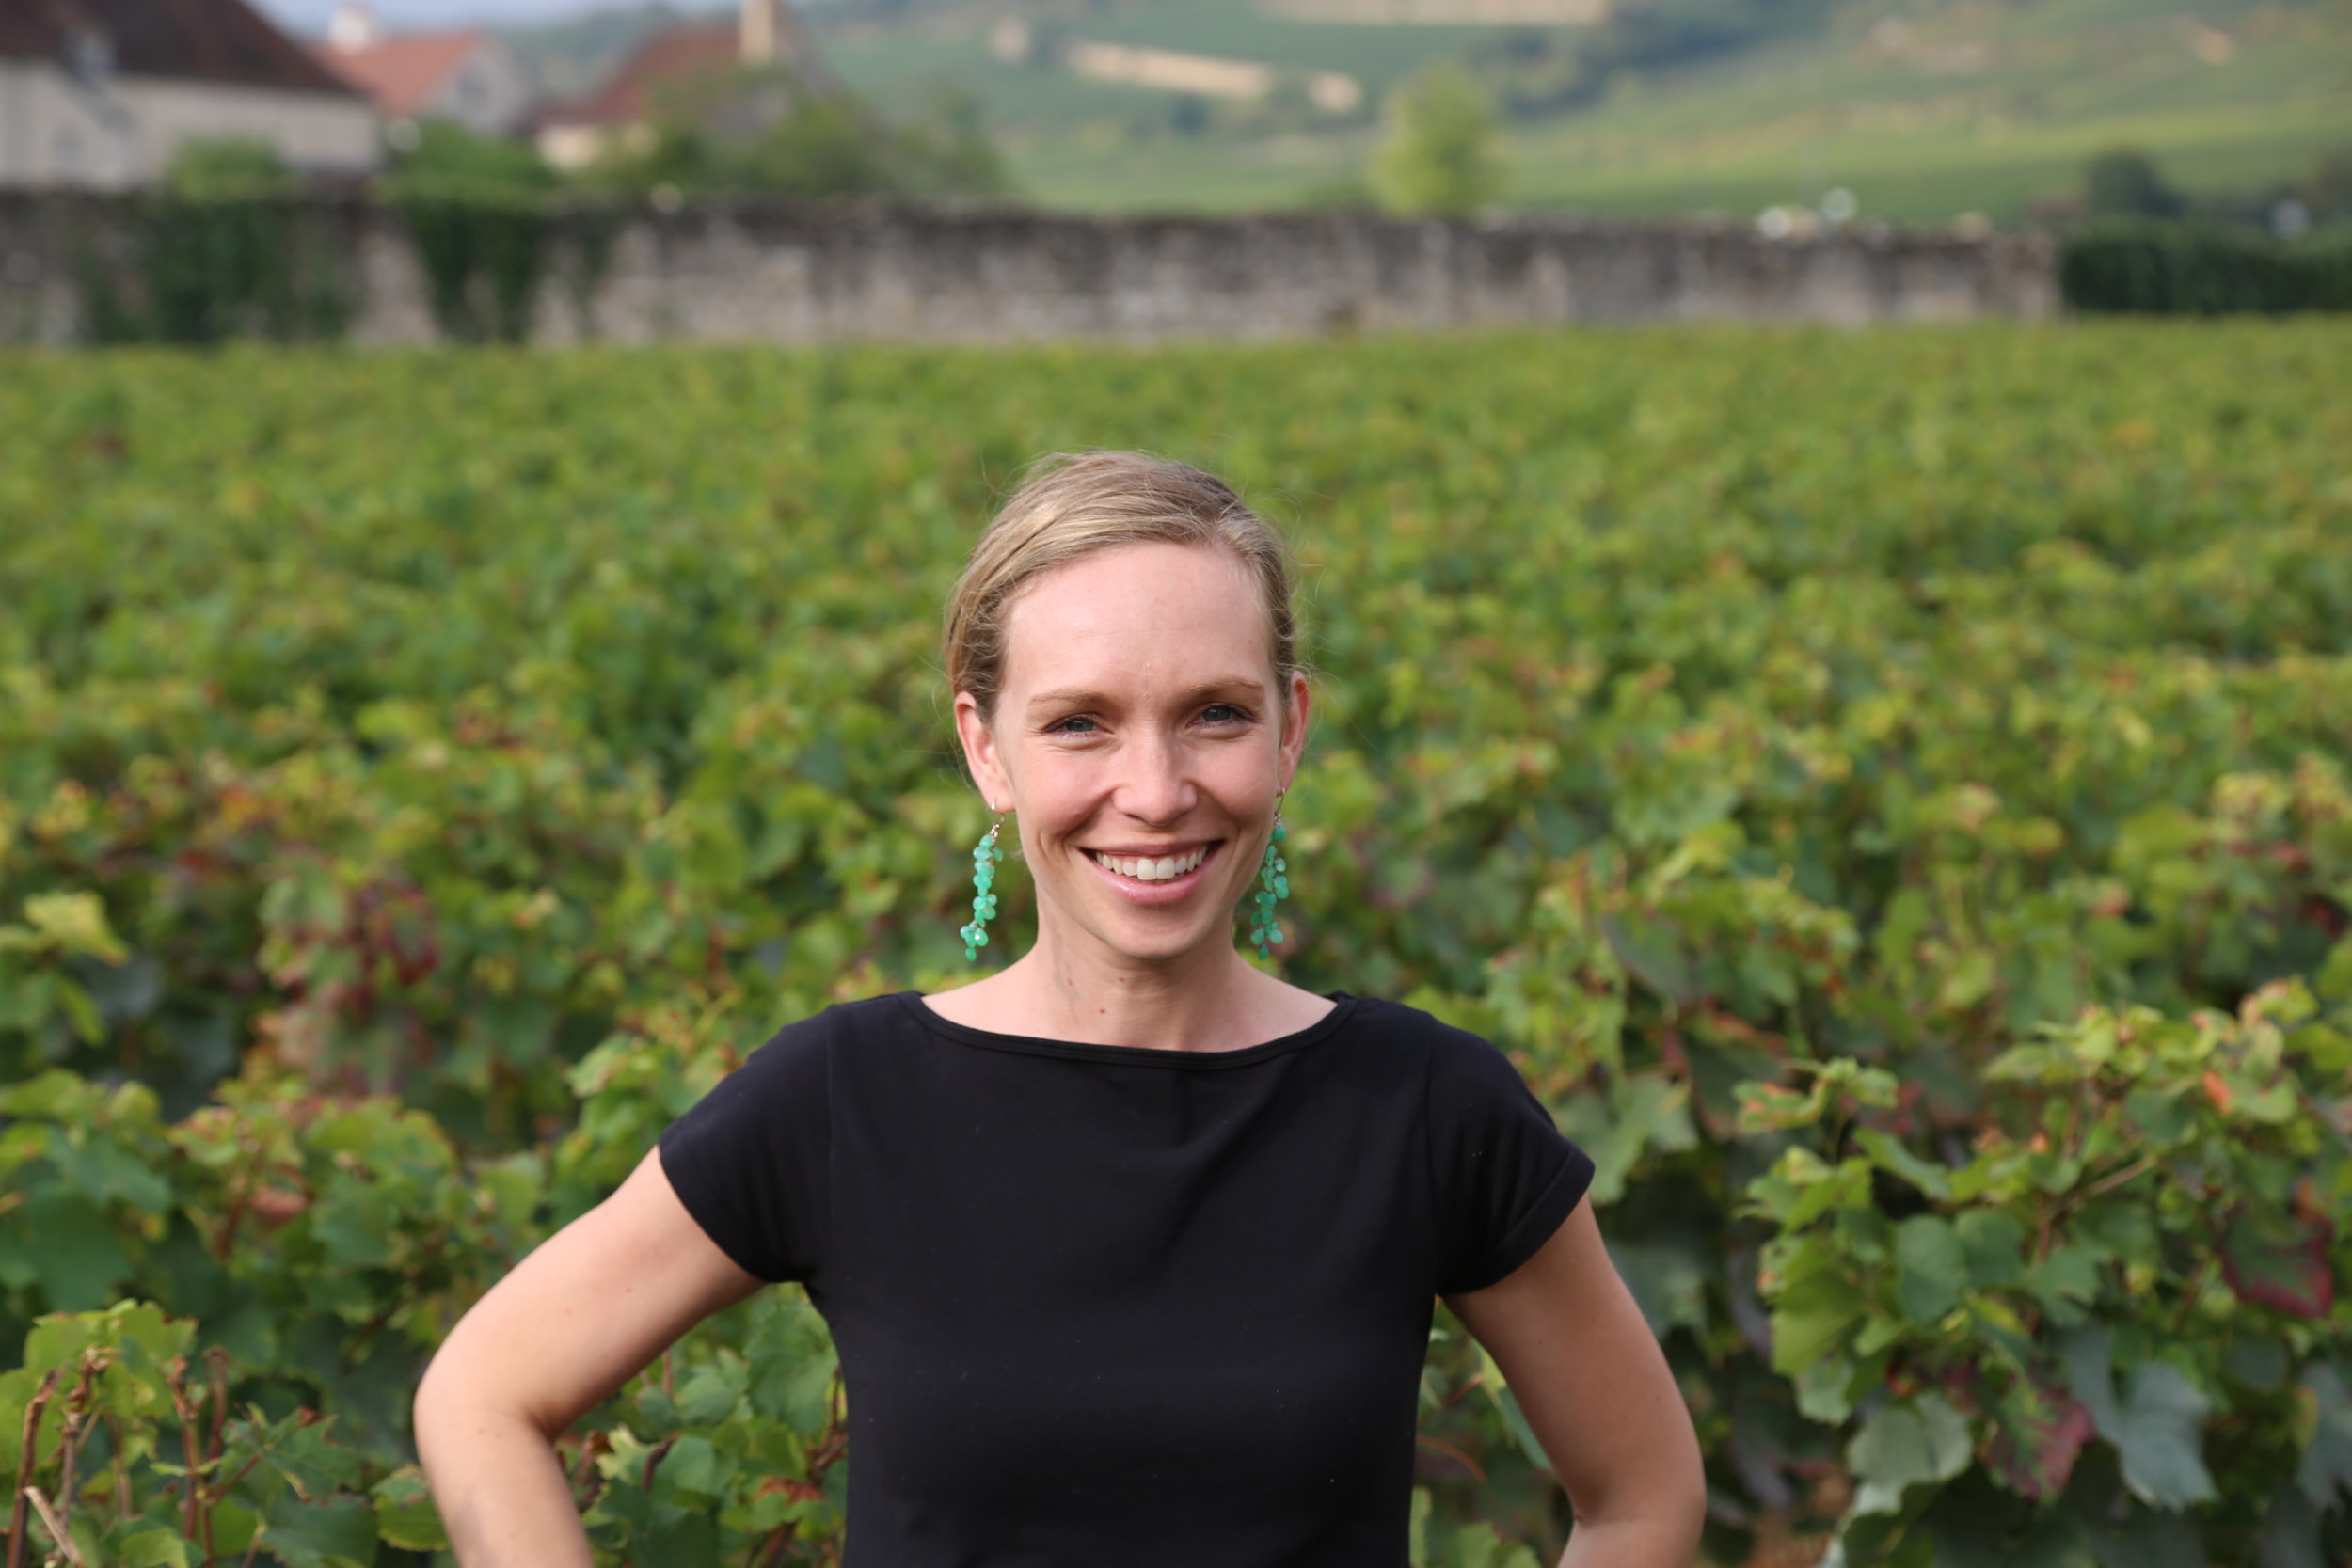 Diana Snowden Seysses, Winemaker - Diana Snowden Seysses, Californian by birth, Burgundian by adoption, just celebrated her 20th harvest in 2018. Since graduating the University of California at Davis with a BS in Viticulture and Enology she has split her wine making time between Napa and Burgundy, taking inspiration and instruction from both beautiful landscapes.